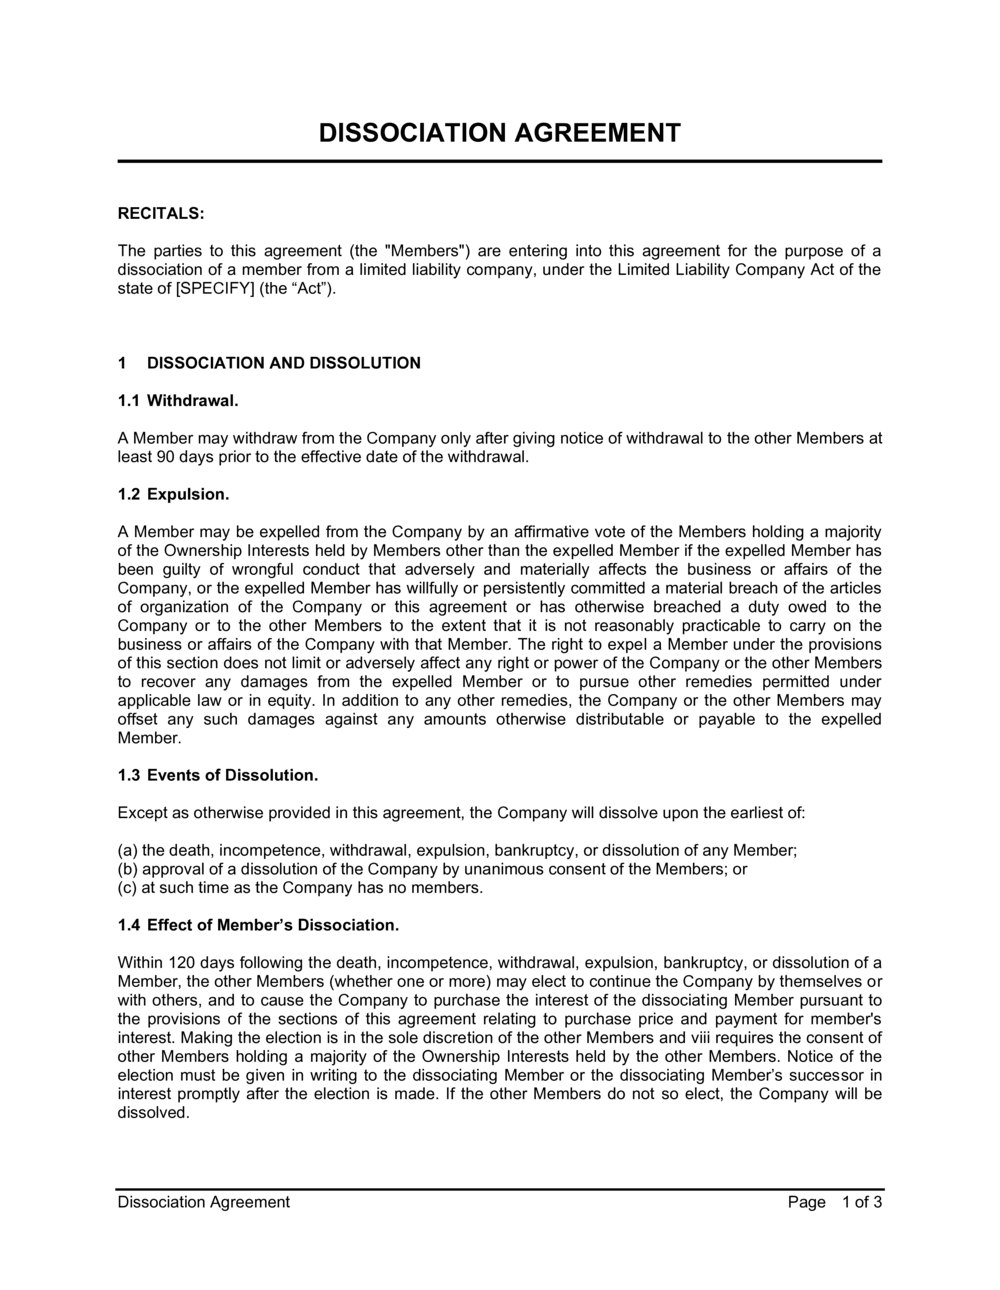 Business-in-a-Box's Dissociation Agreement Template